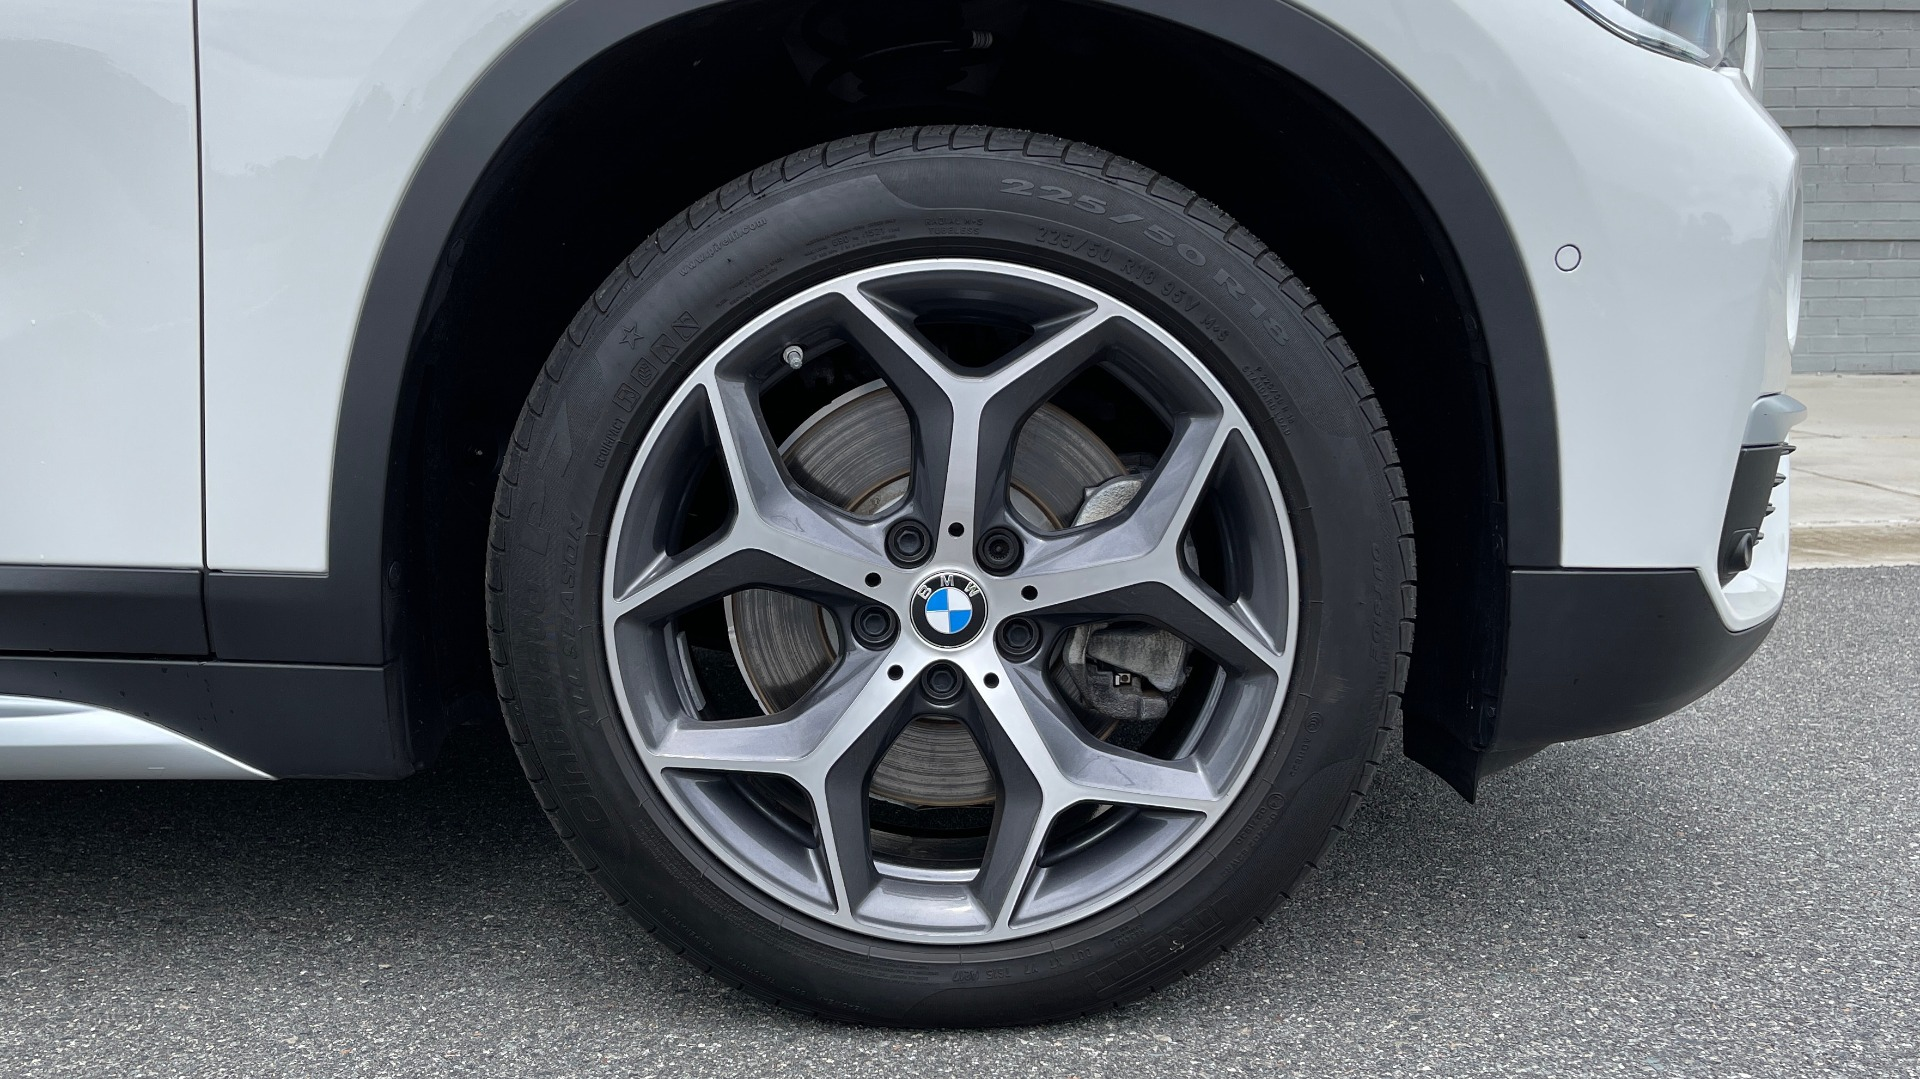 Used 2018 BMW X1 XDRIVE28I / CONV PKG / PANO-ROOF / HTD STS / PARK ASST / REARVIEW for sale $30,995 at Formula Imports in Charlotte NC 28227 89